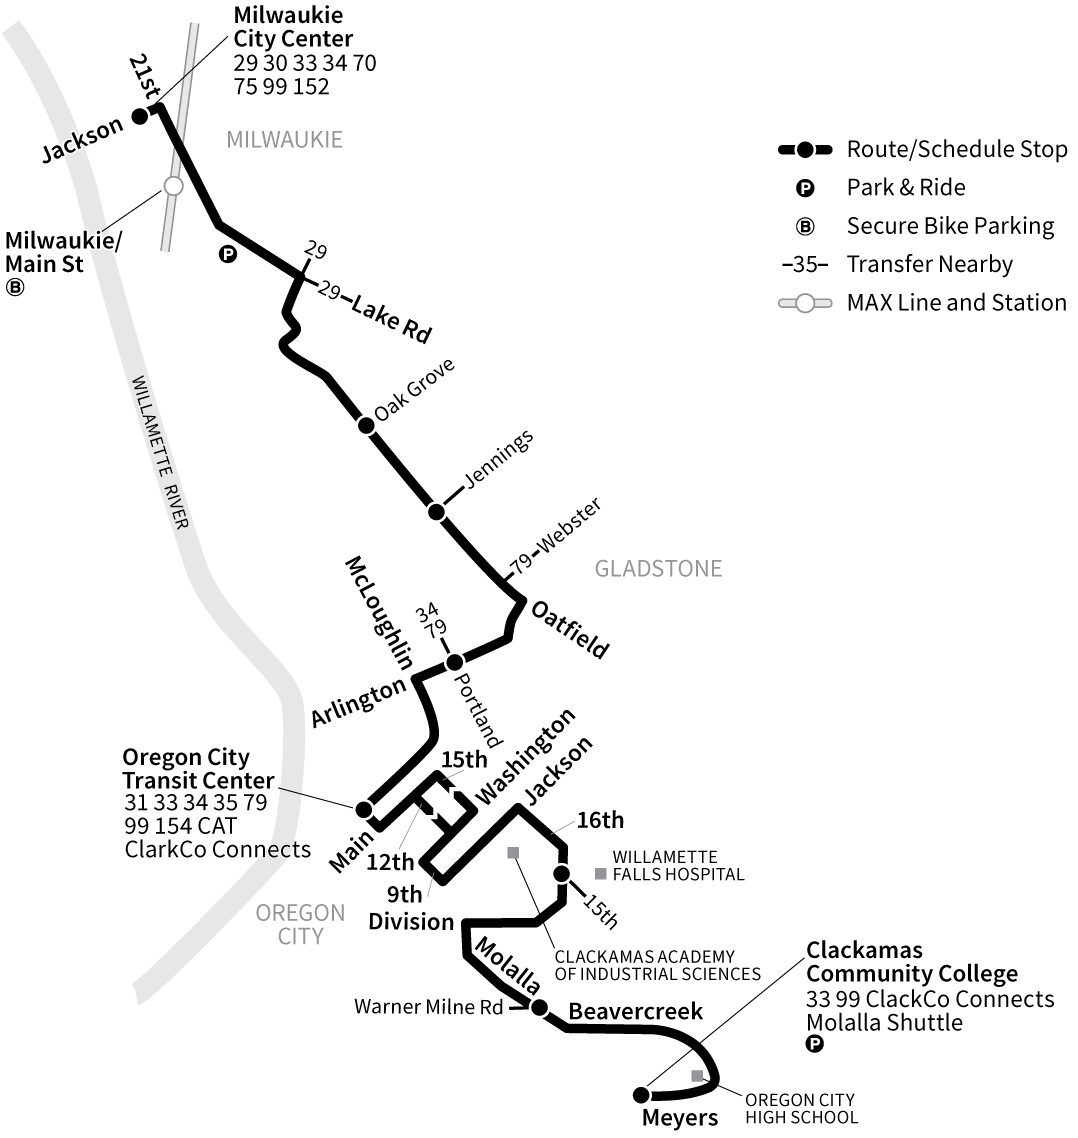 Bus Line 32 route map